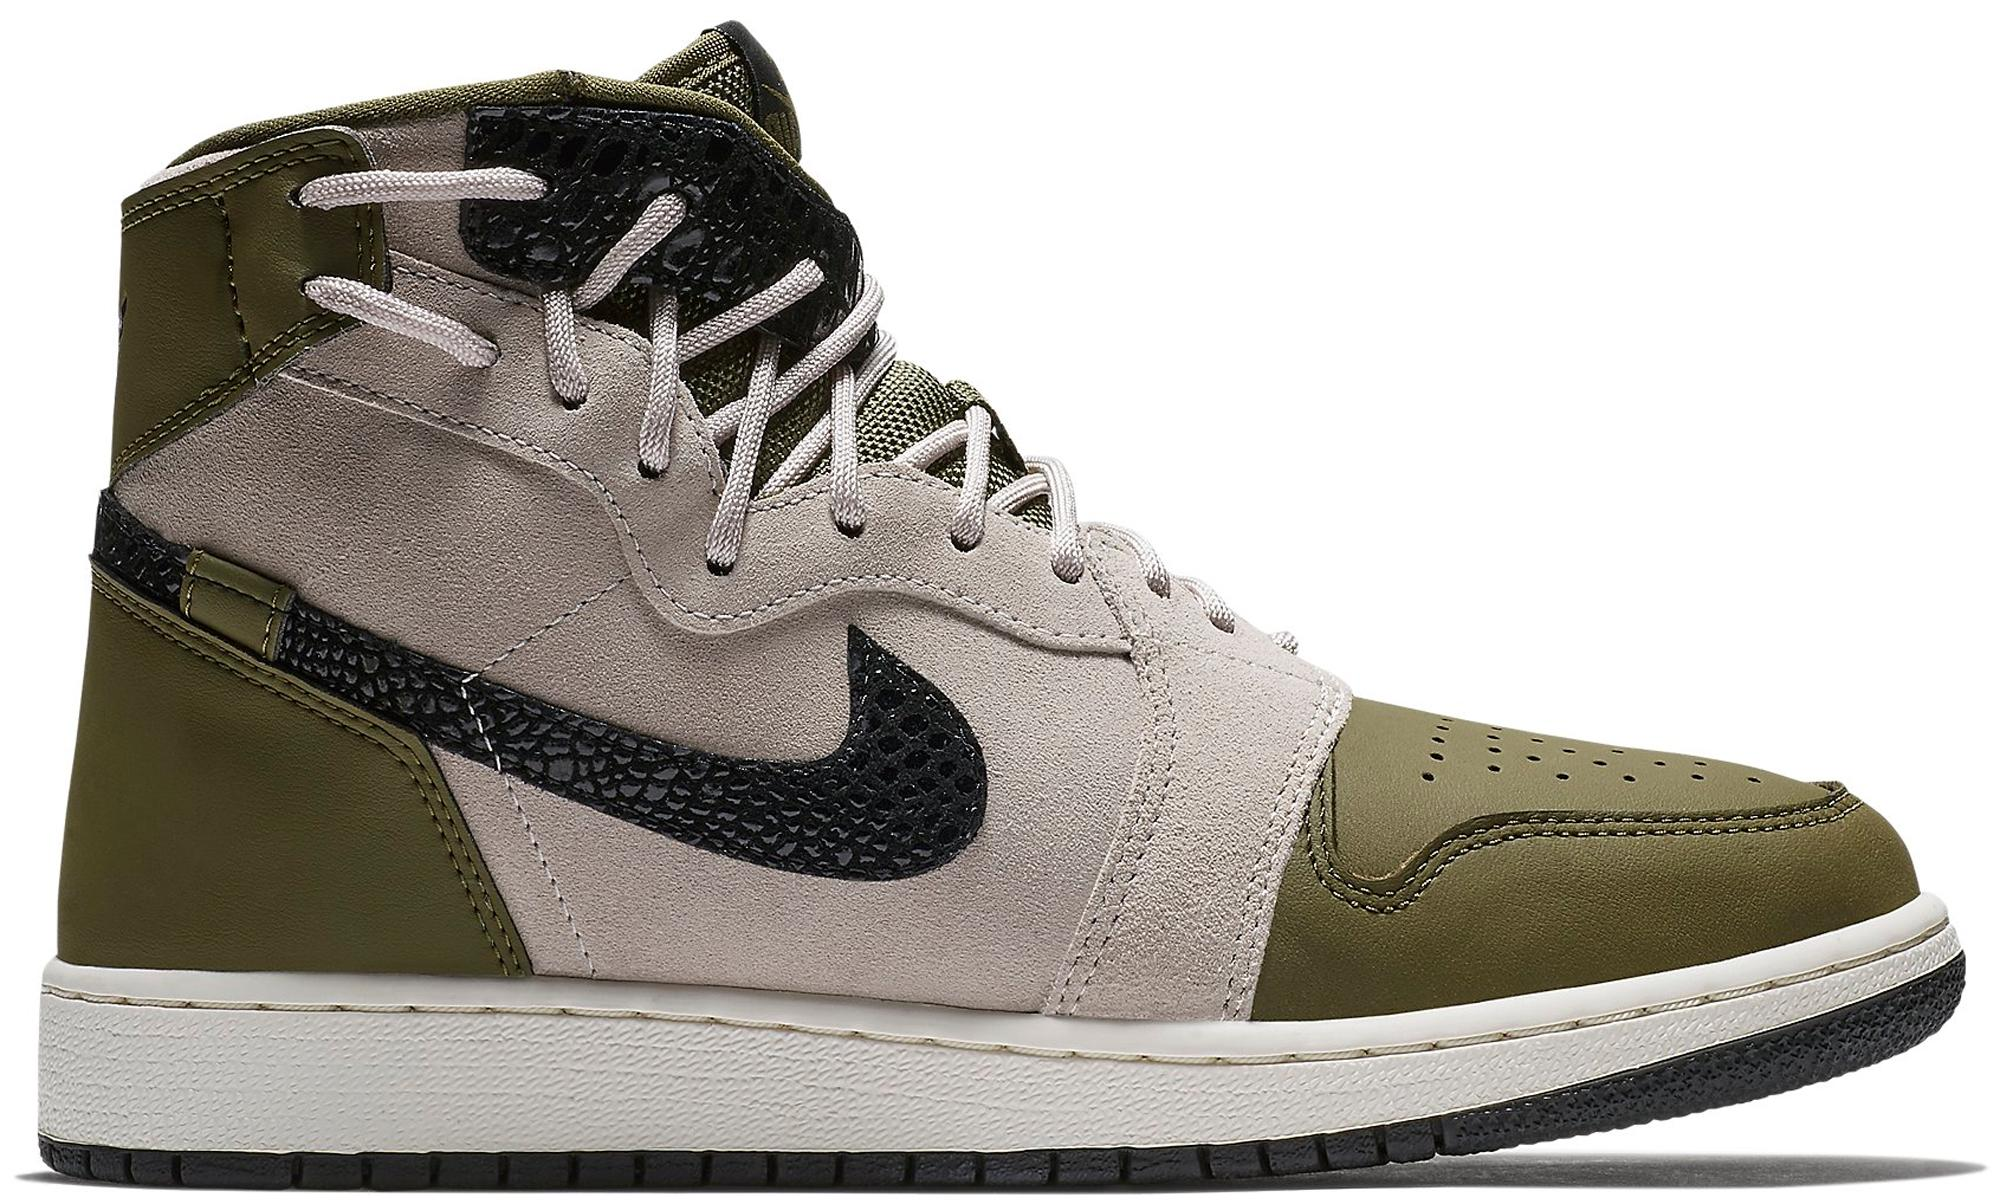 Lyst - Nike 1 Rebel Xx Olive Canvas Moon Particle (w) in Black 2748c8744d2f